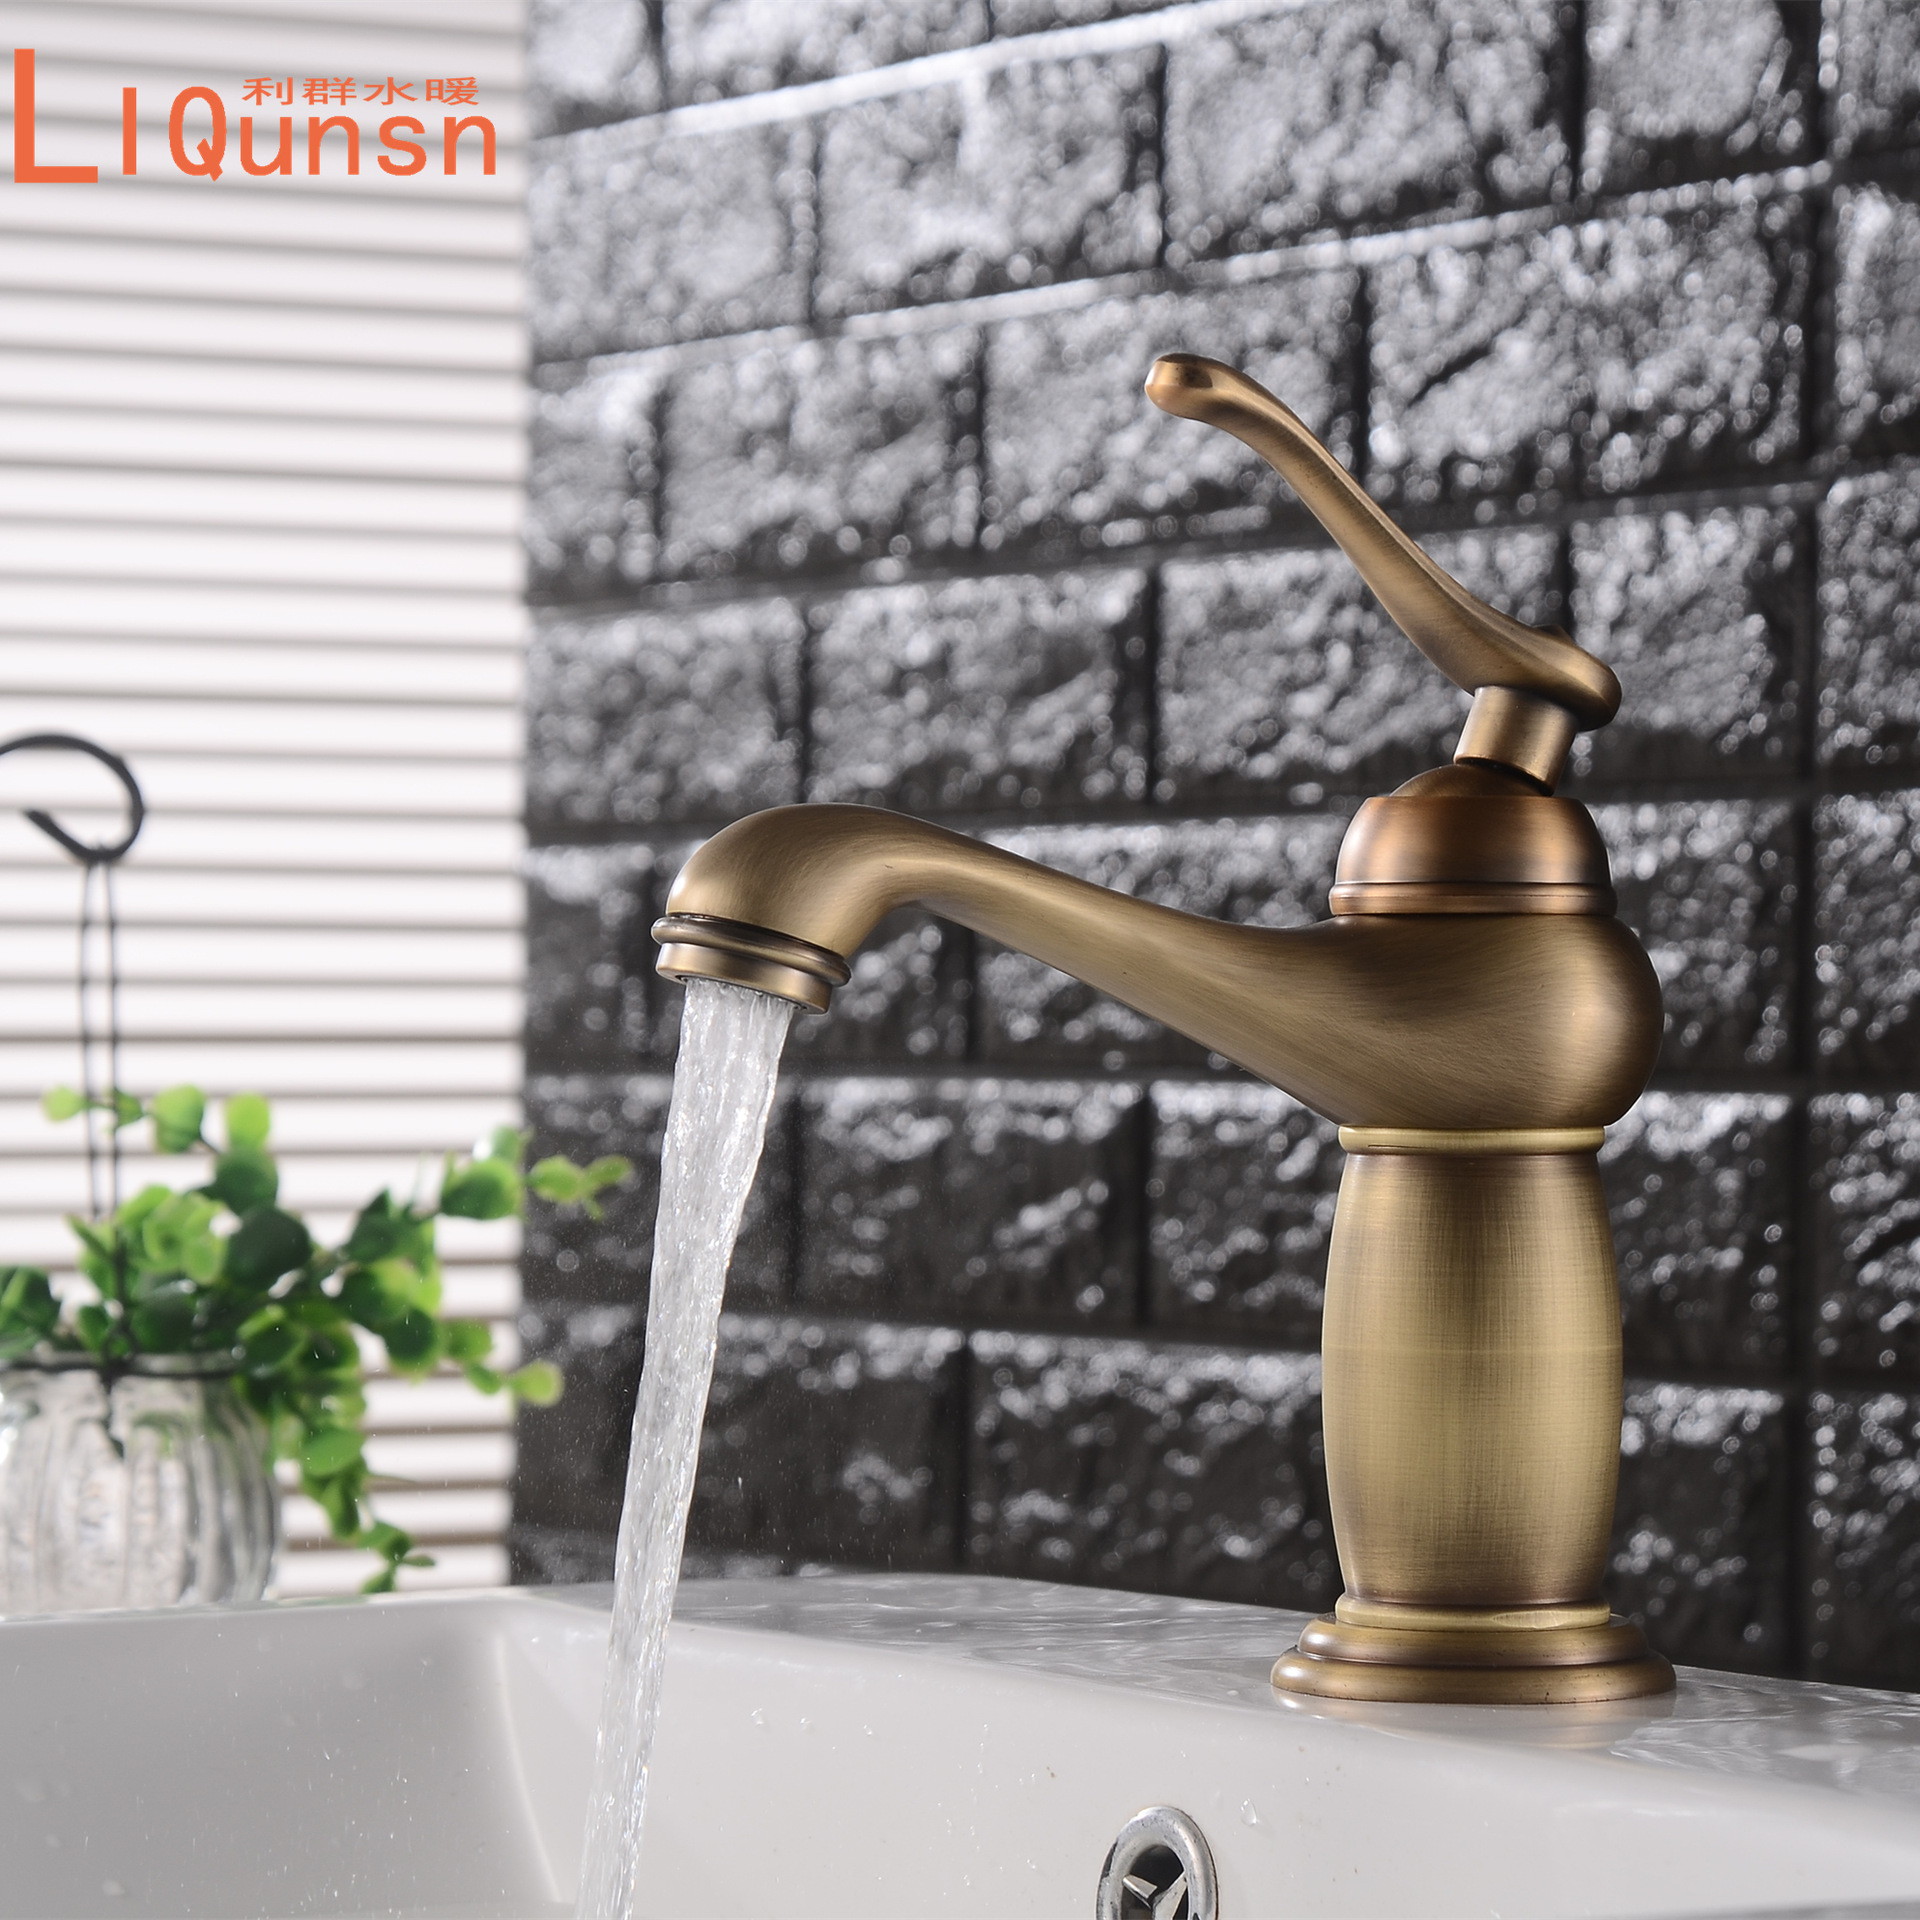 New Style Vintage Big Belly Basin Hot And Cold Faucet Retro Hot And Cold Mixing Water Basin Table Basin Tap